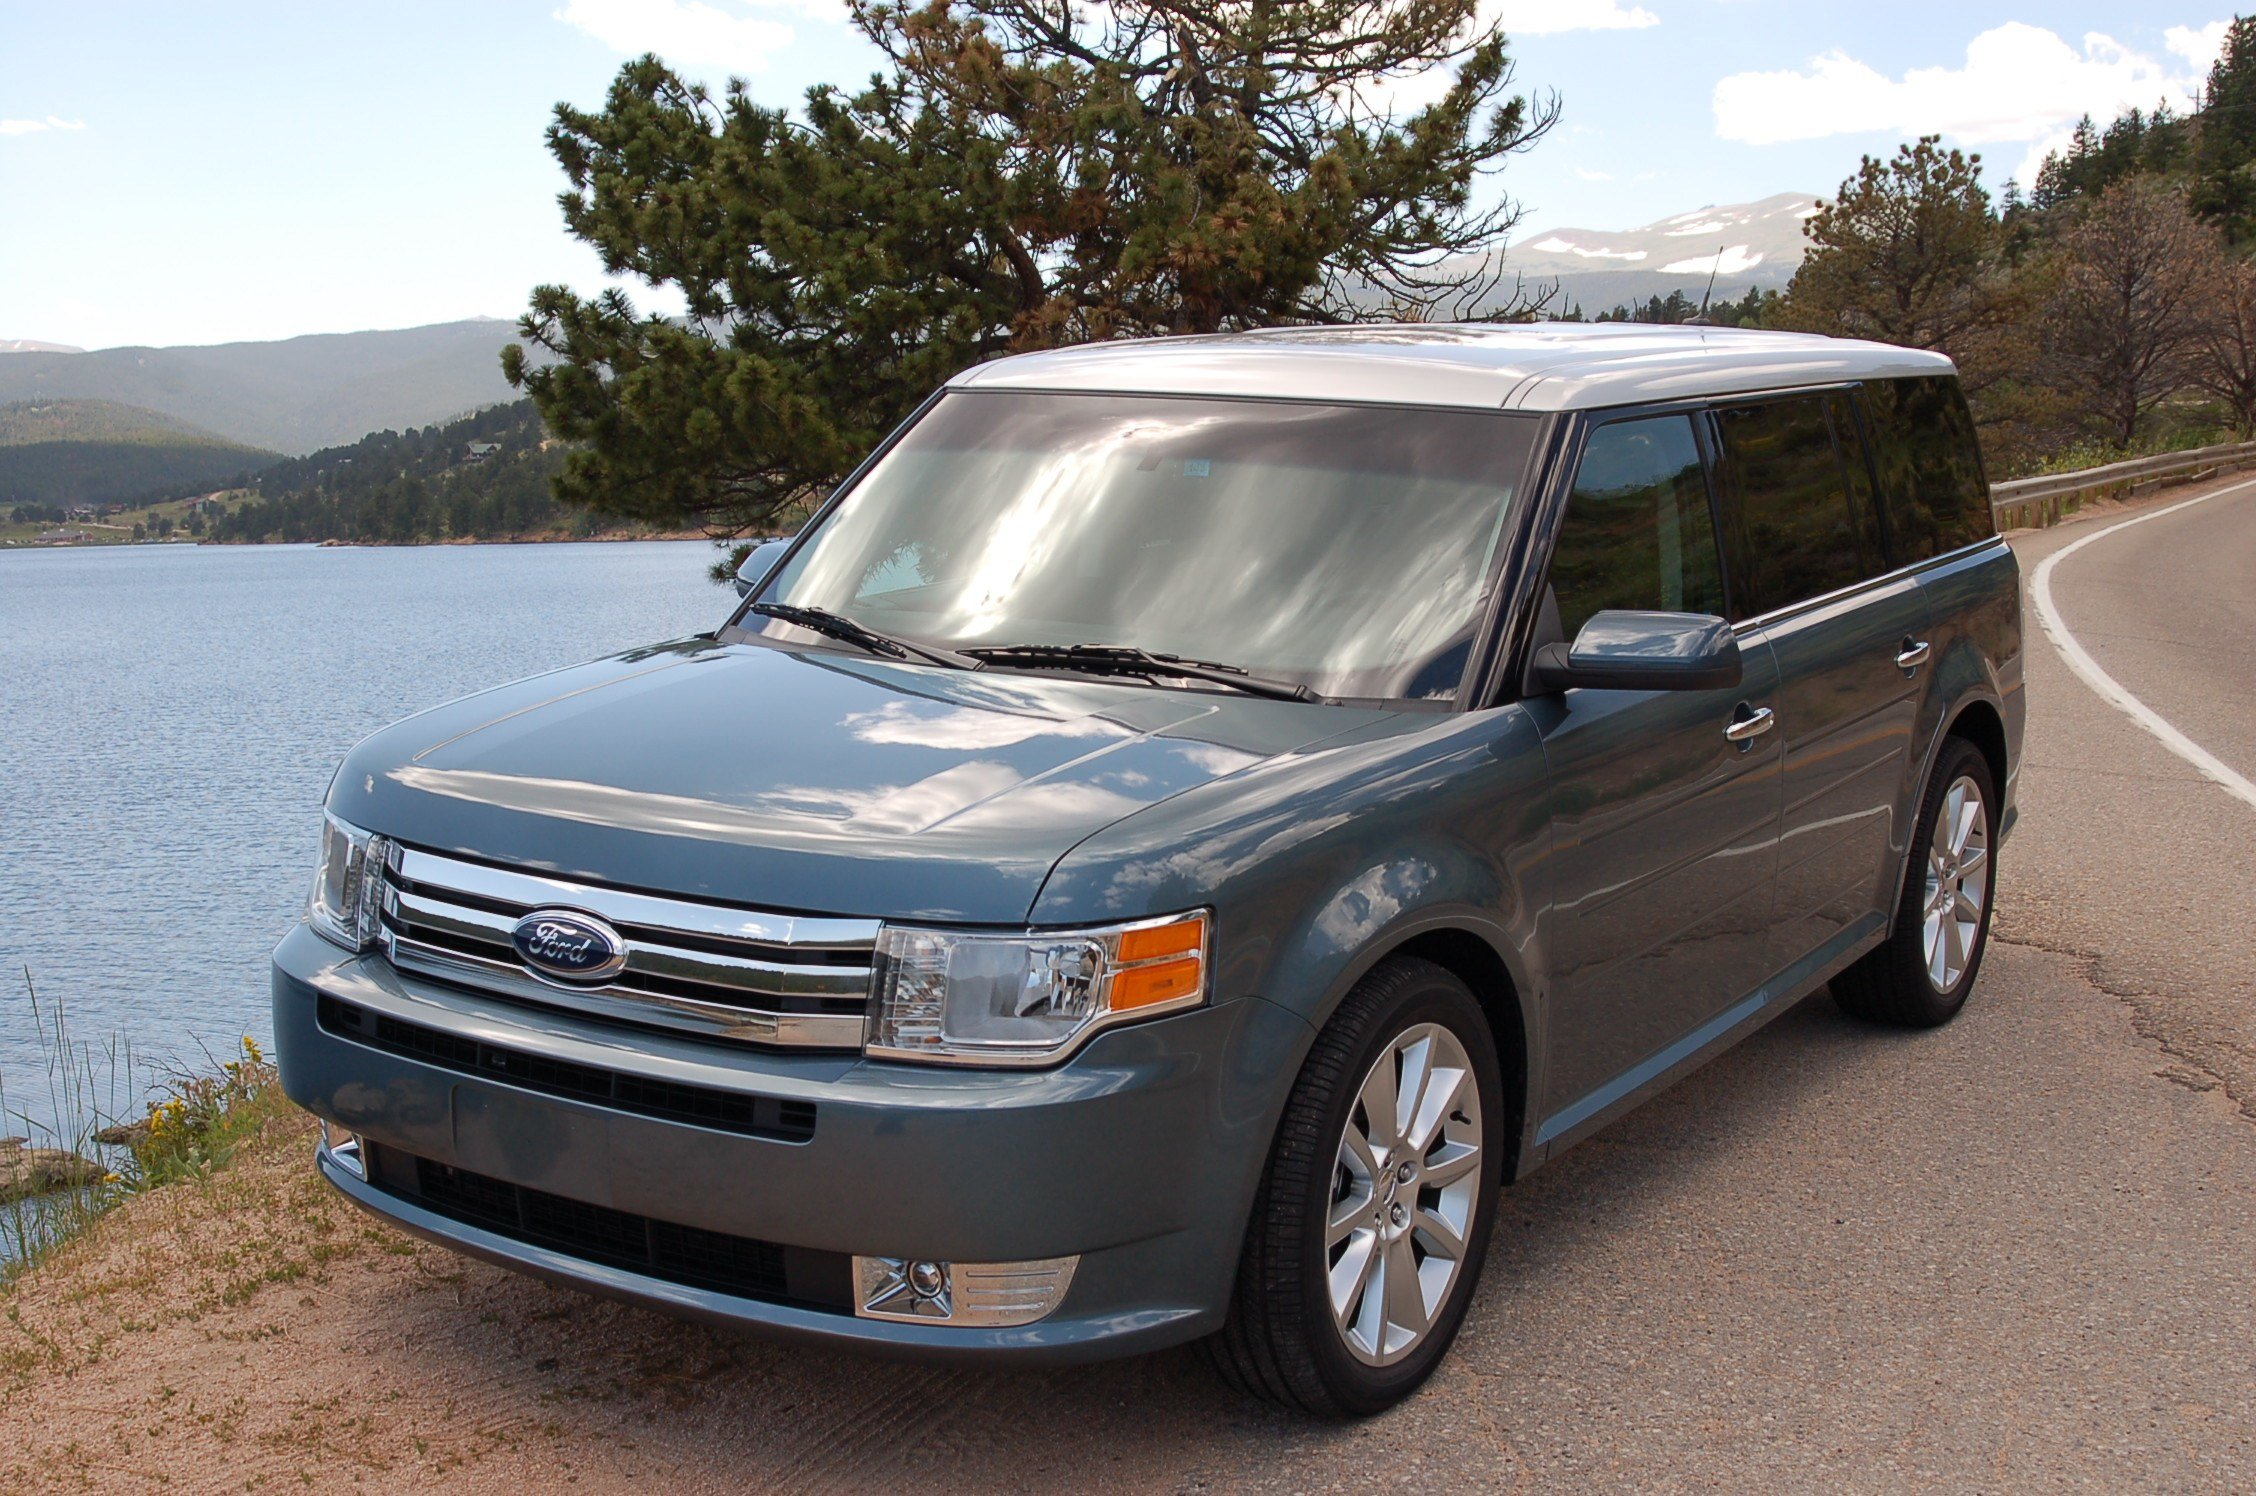 New 2010 Ford Flex Ecoboost In Boulder Top Speed On This Month